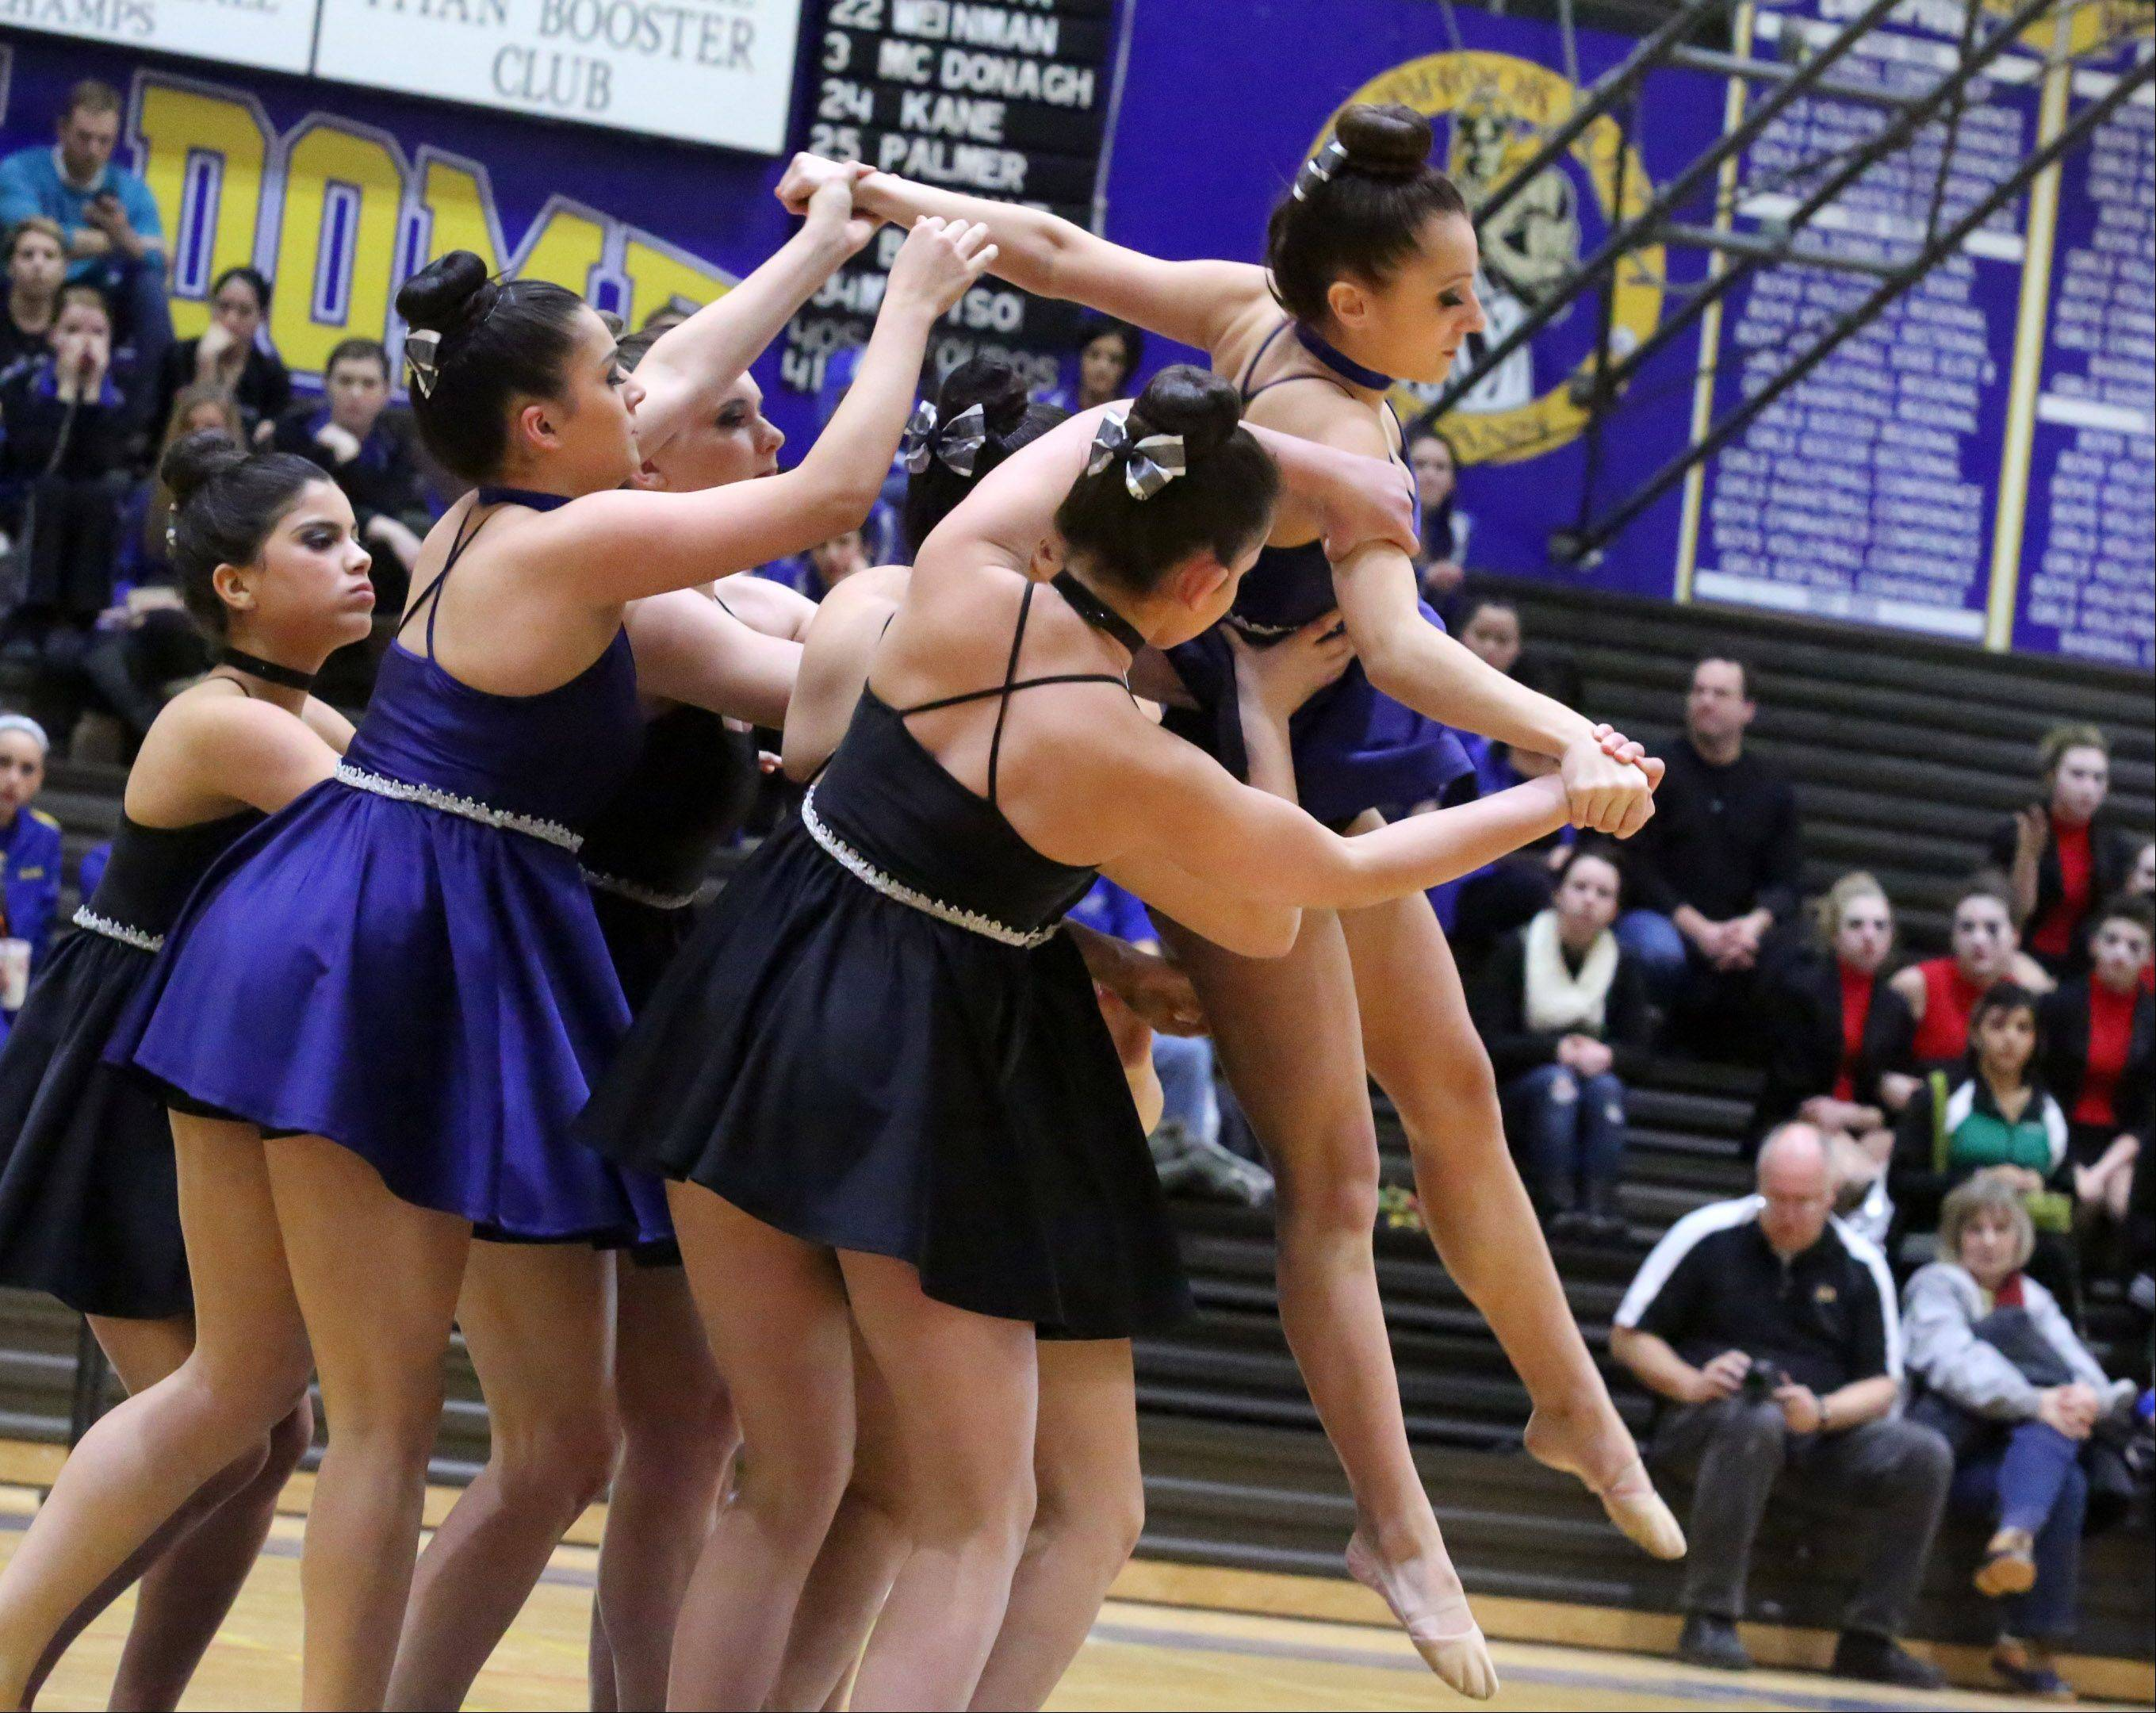 Larkin High School's dance team competes at the IHSA competitive dance sectional at Glenbrook South High School on Saturday in Glenview.